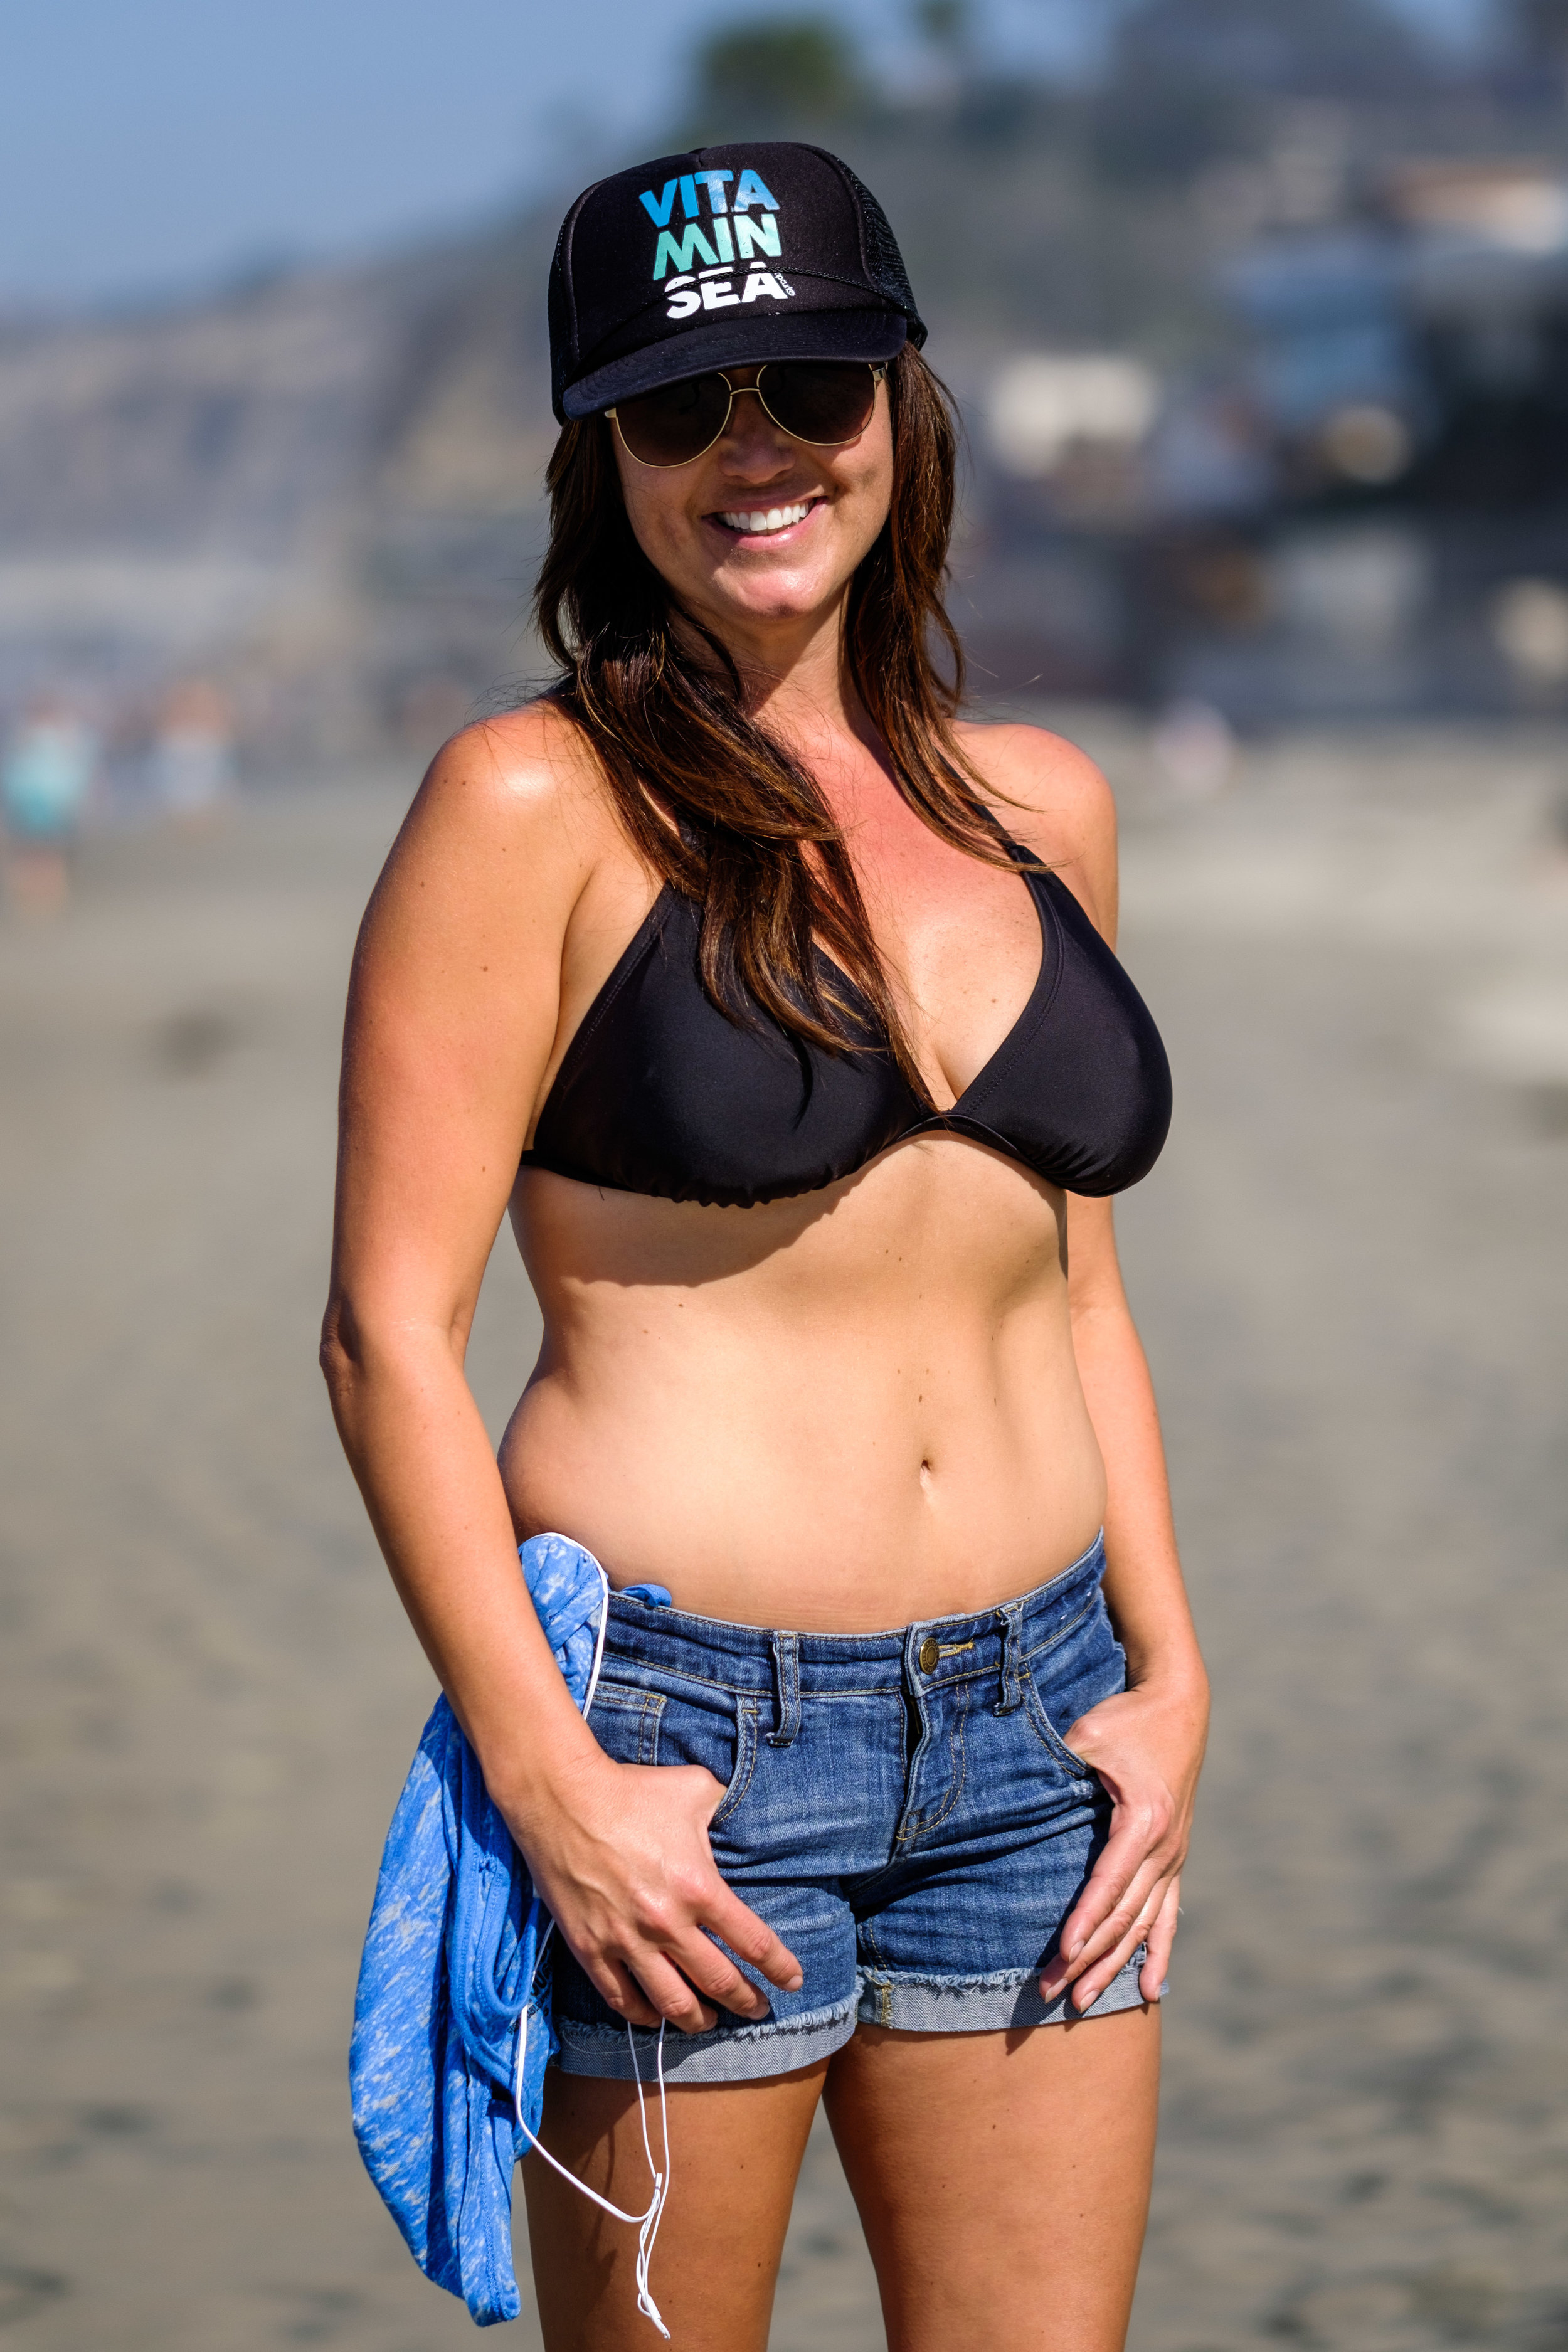 Here to watch her daughter compete in a surf competition. Said she hated photos of herself.